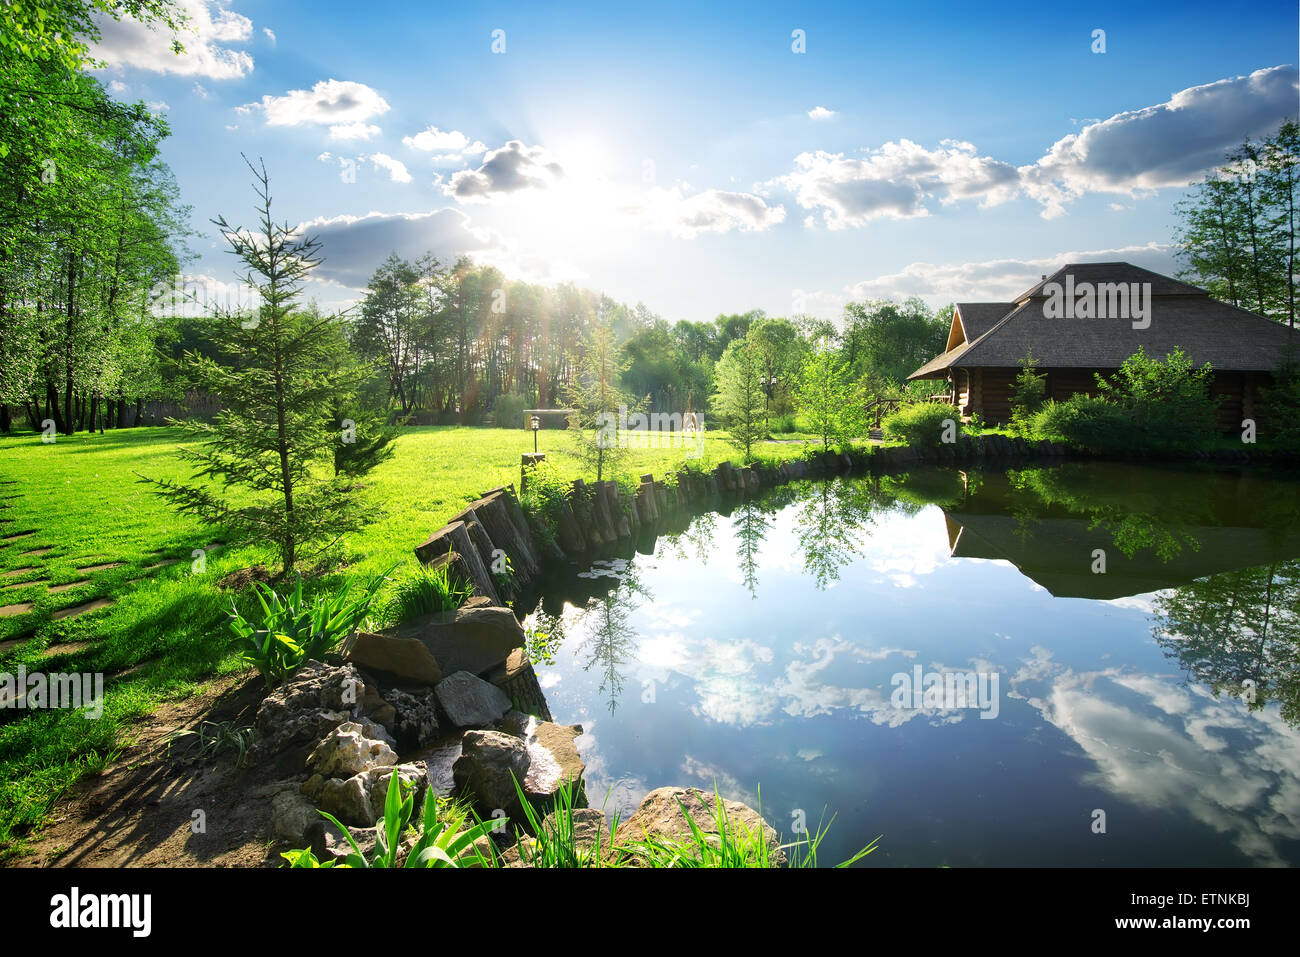 Wooden bathhouse near lake in the evening - Stock Image